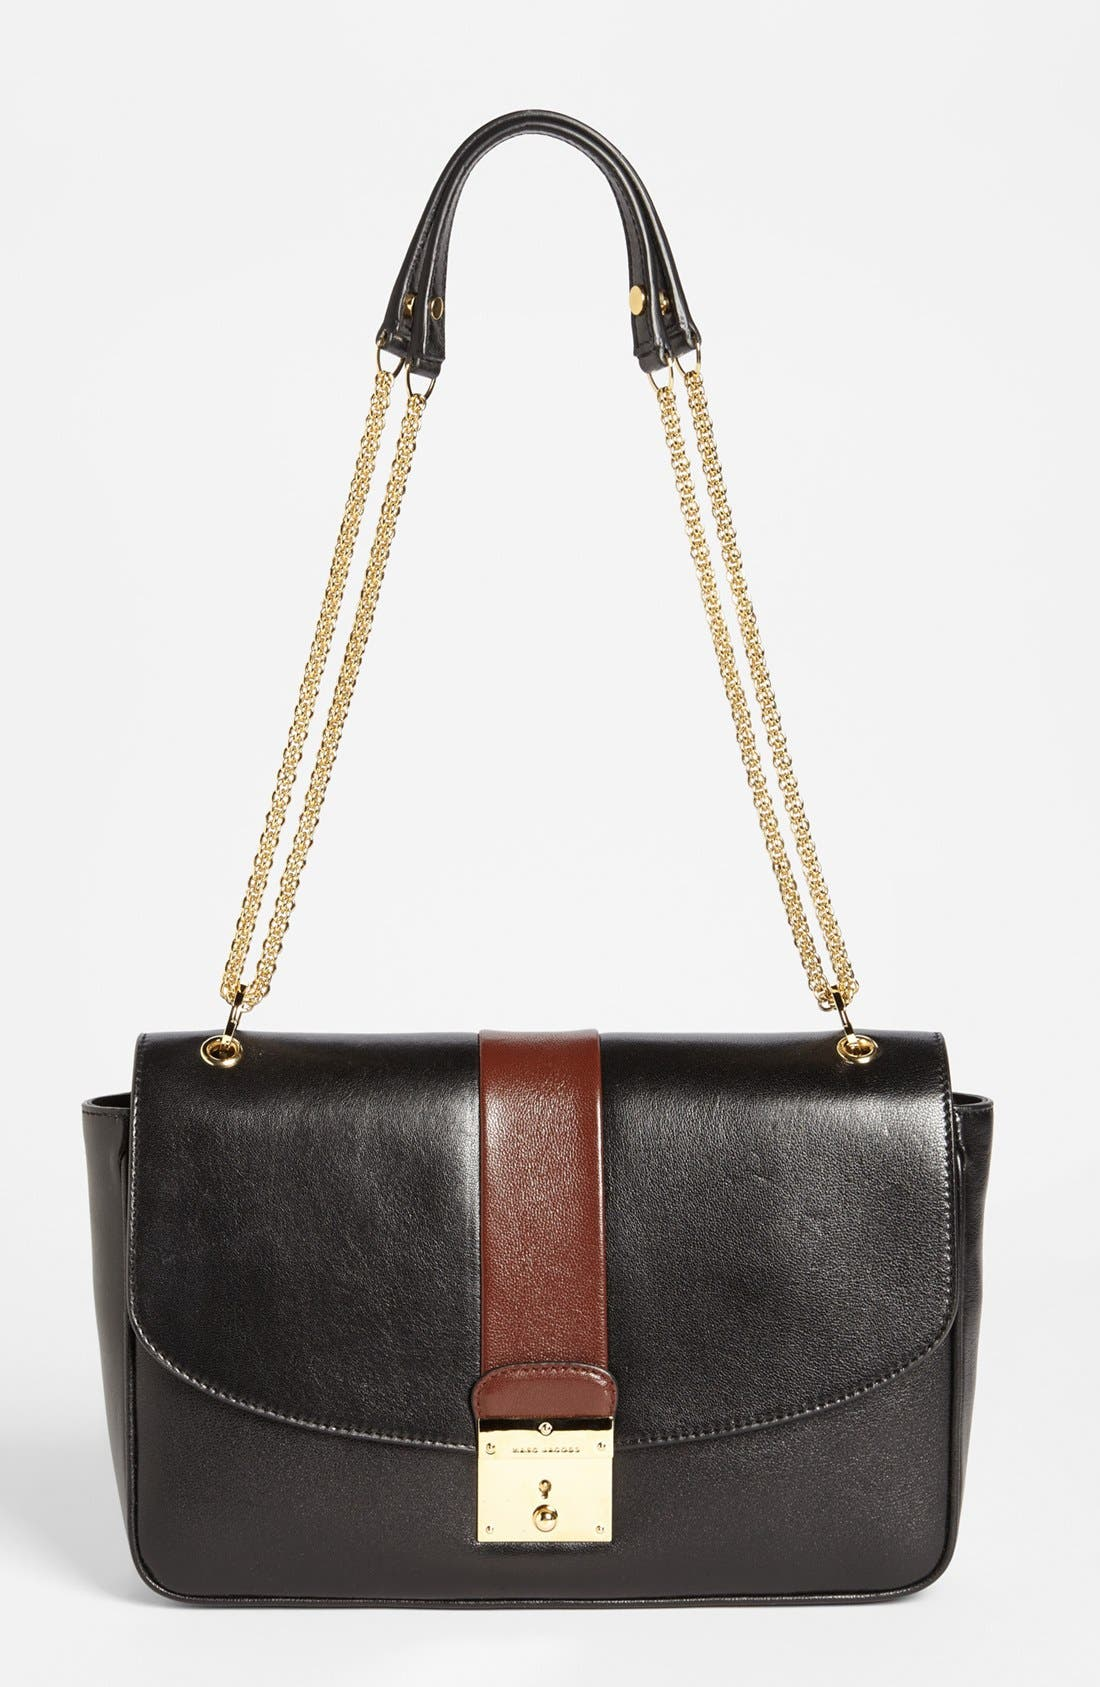 Main Image - MARC JACOBS 'Checkers - Polly' Leather Shoulder Bag